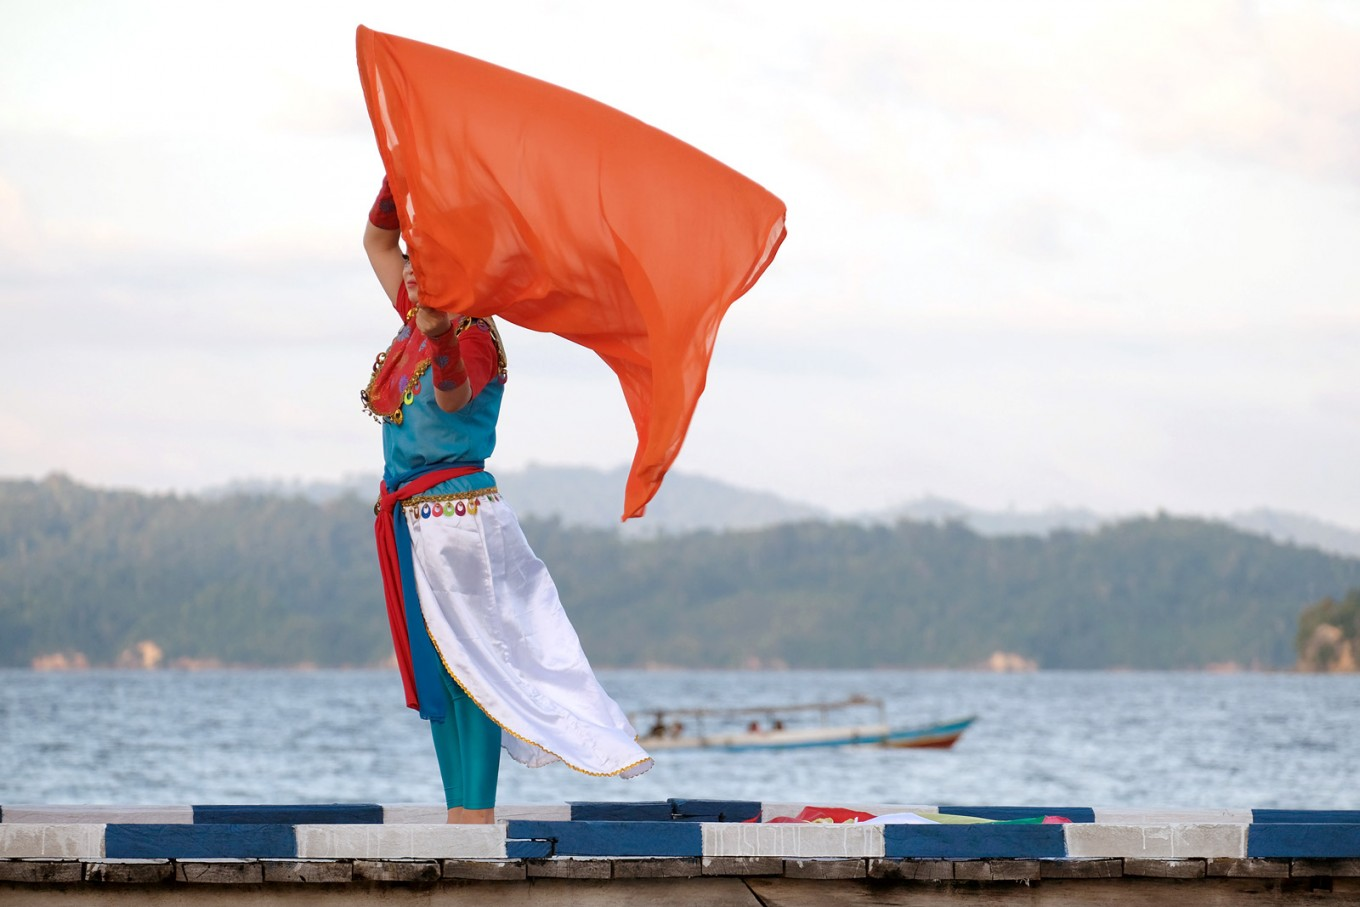 A dancer gives a contemporary touch to Tojo Una Una dance during the opening of Togean International Oceanic Festival on Papan Island.